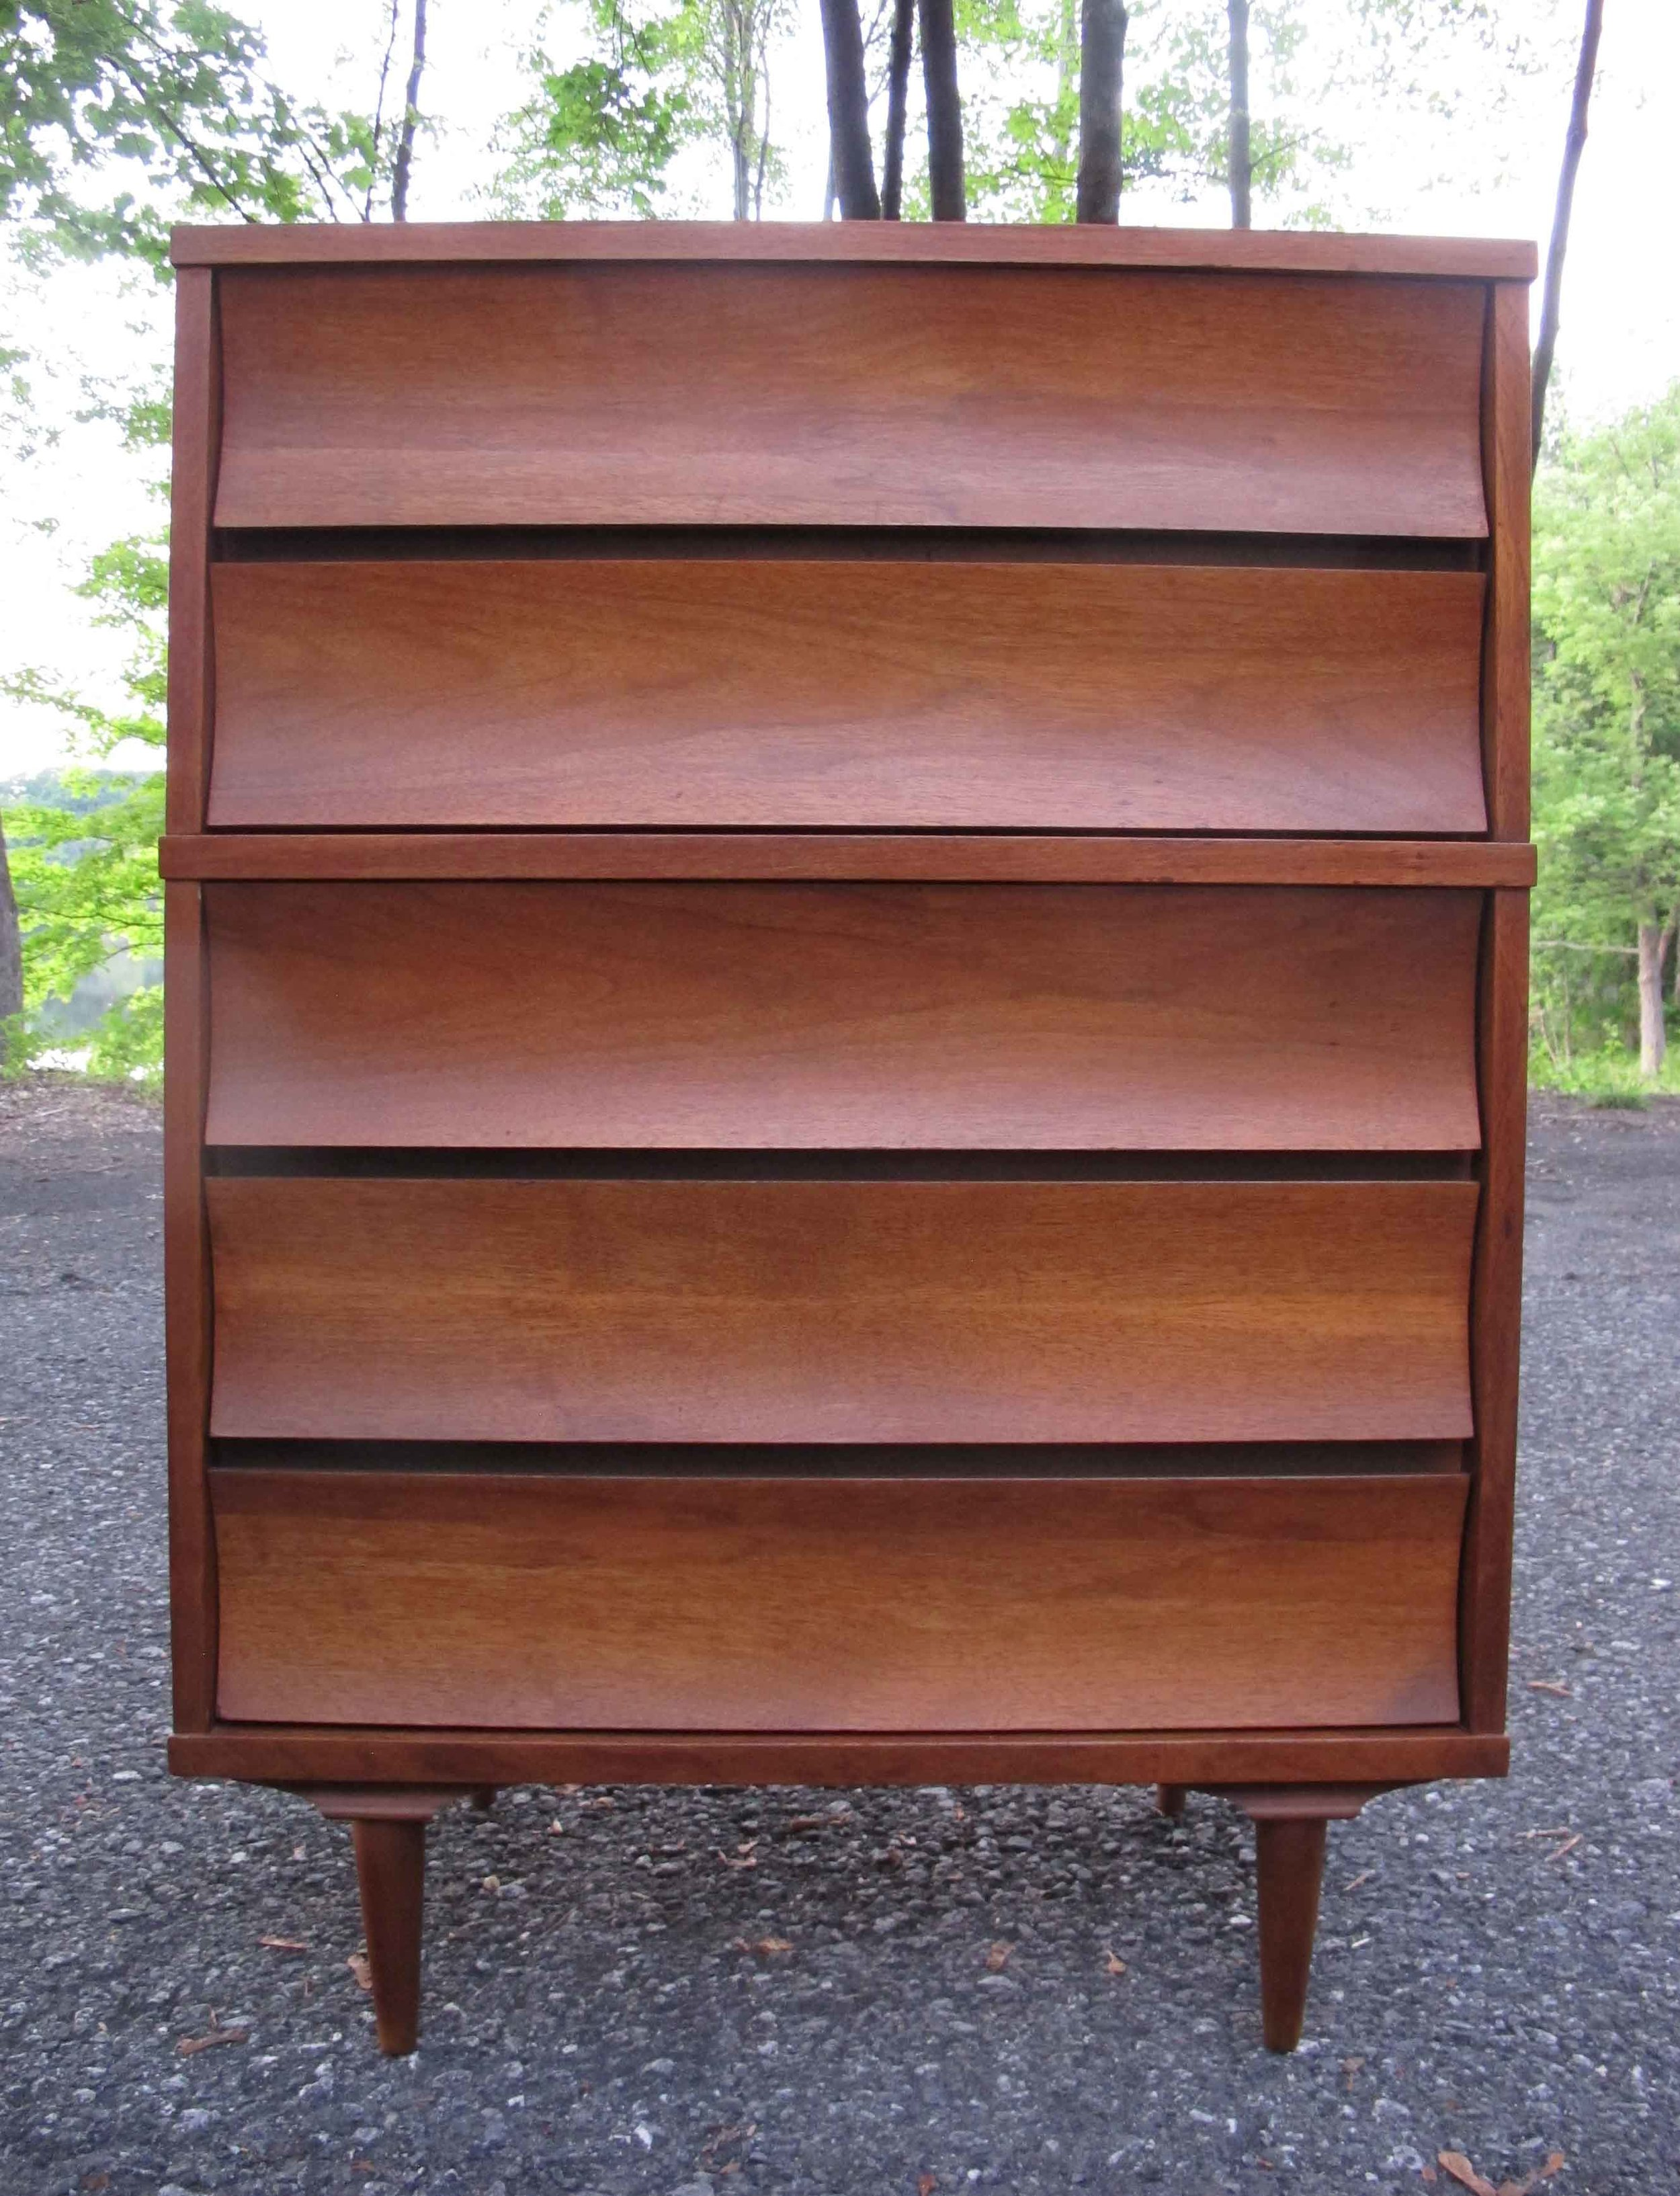 MID CENTURY TALL DRESSER BY JOHNSON CARPER